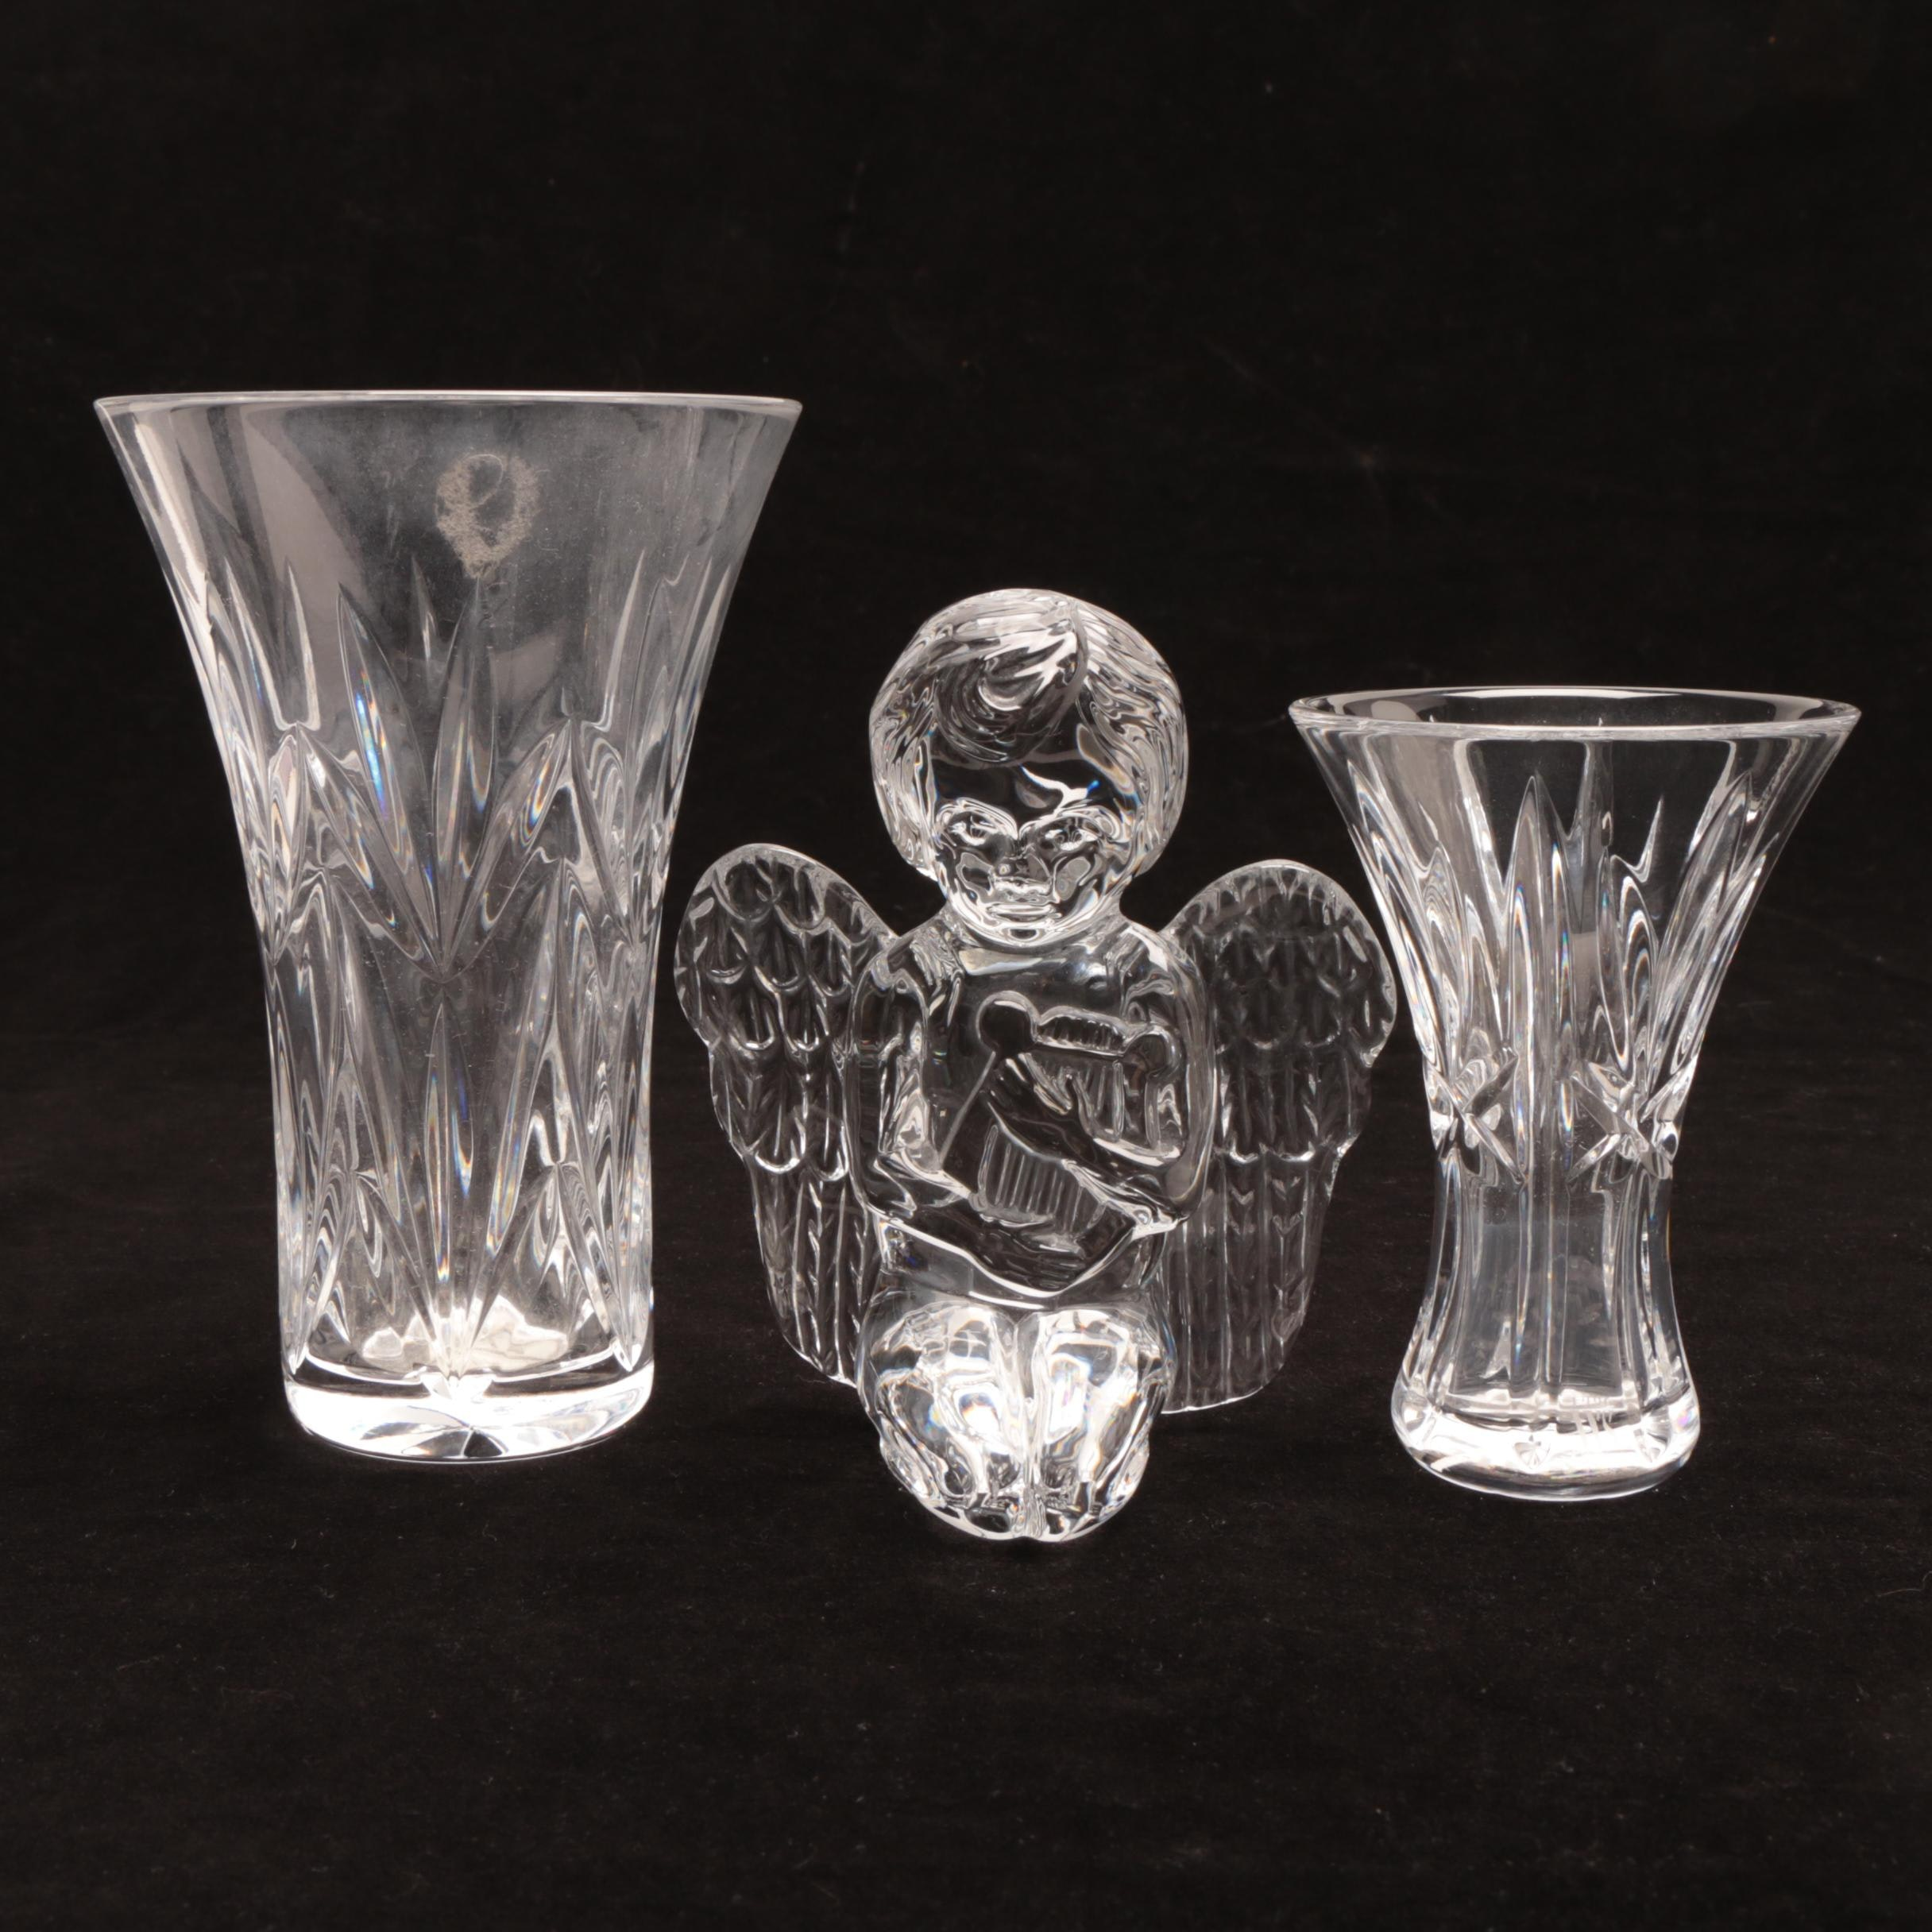 Waterford Crystal Vases with Angel